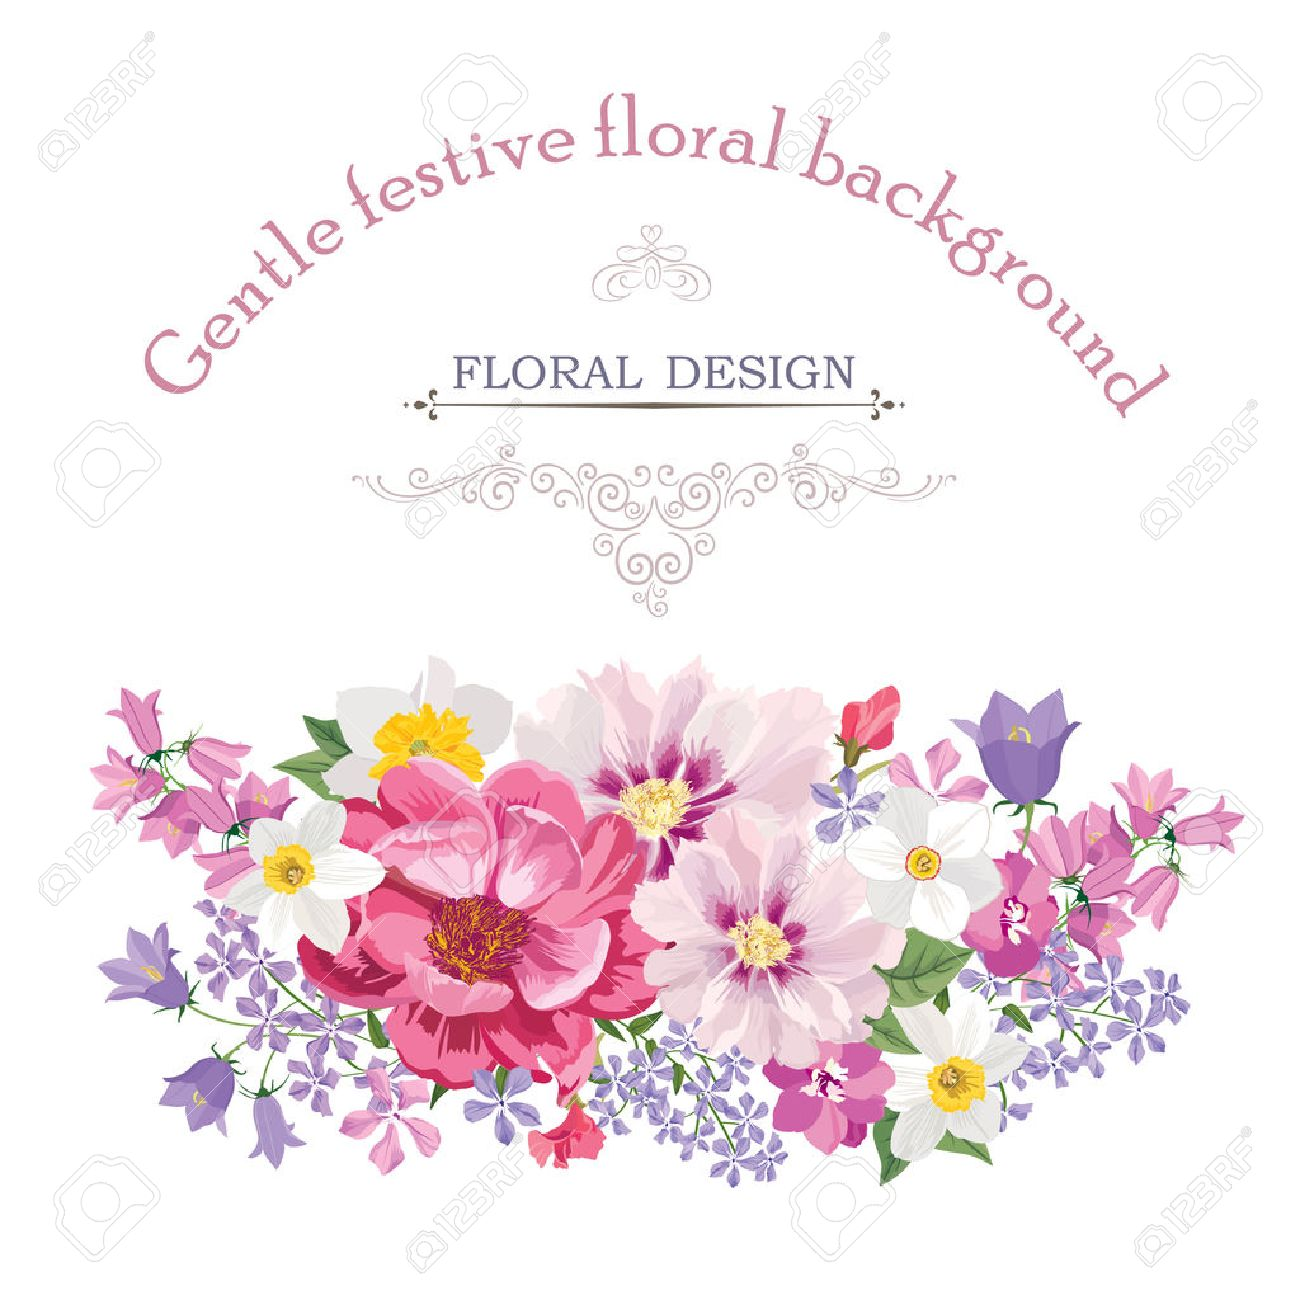 Floral frame with summer flowers. Floral bouquet with rose, narcissus, carnation, lilac and wildflower. Vintage Greeting Card with flowers. Watercolor flourish border. Floral background. - 46073574